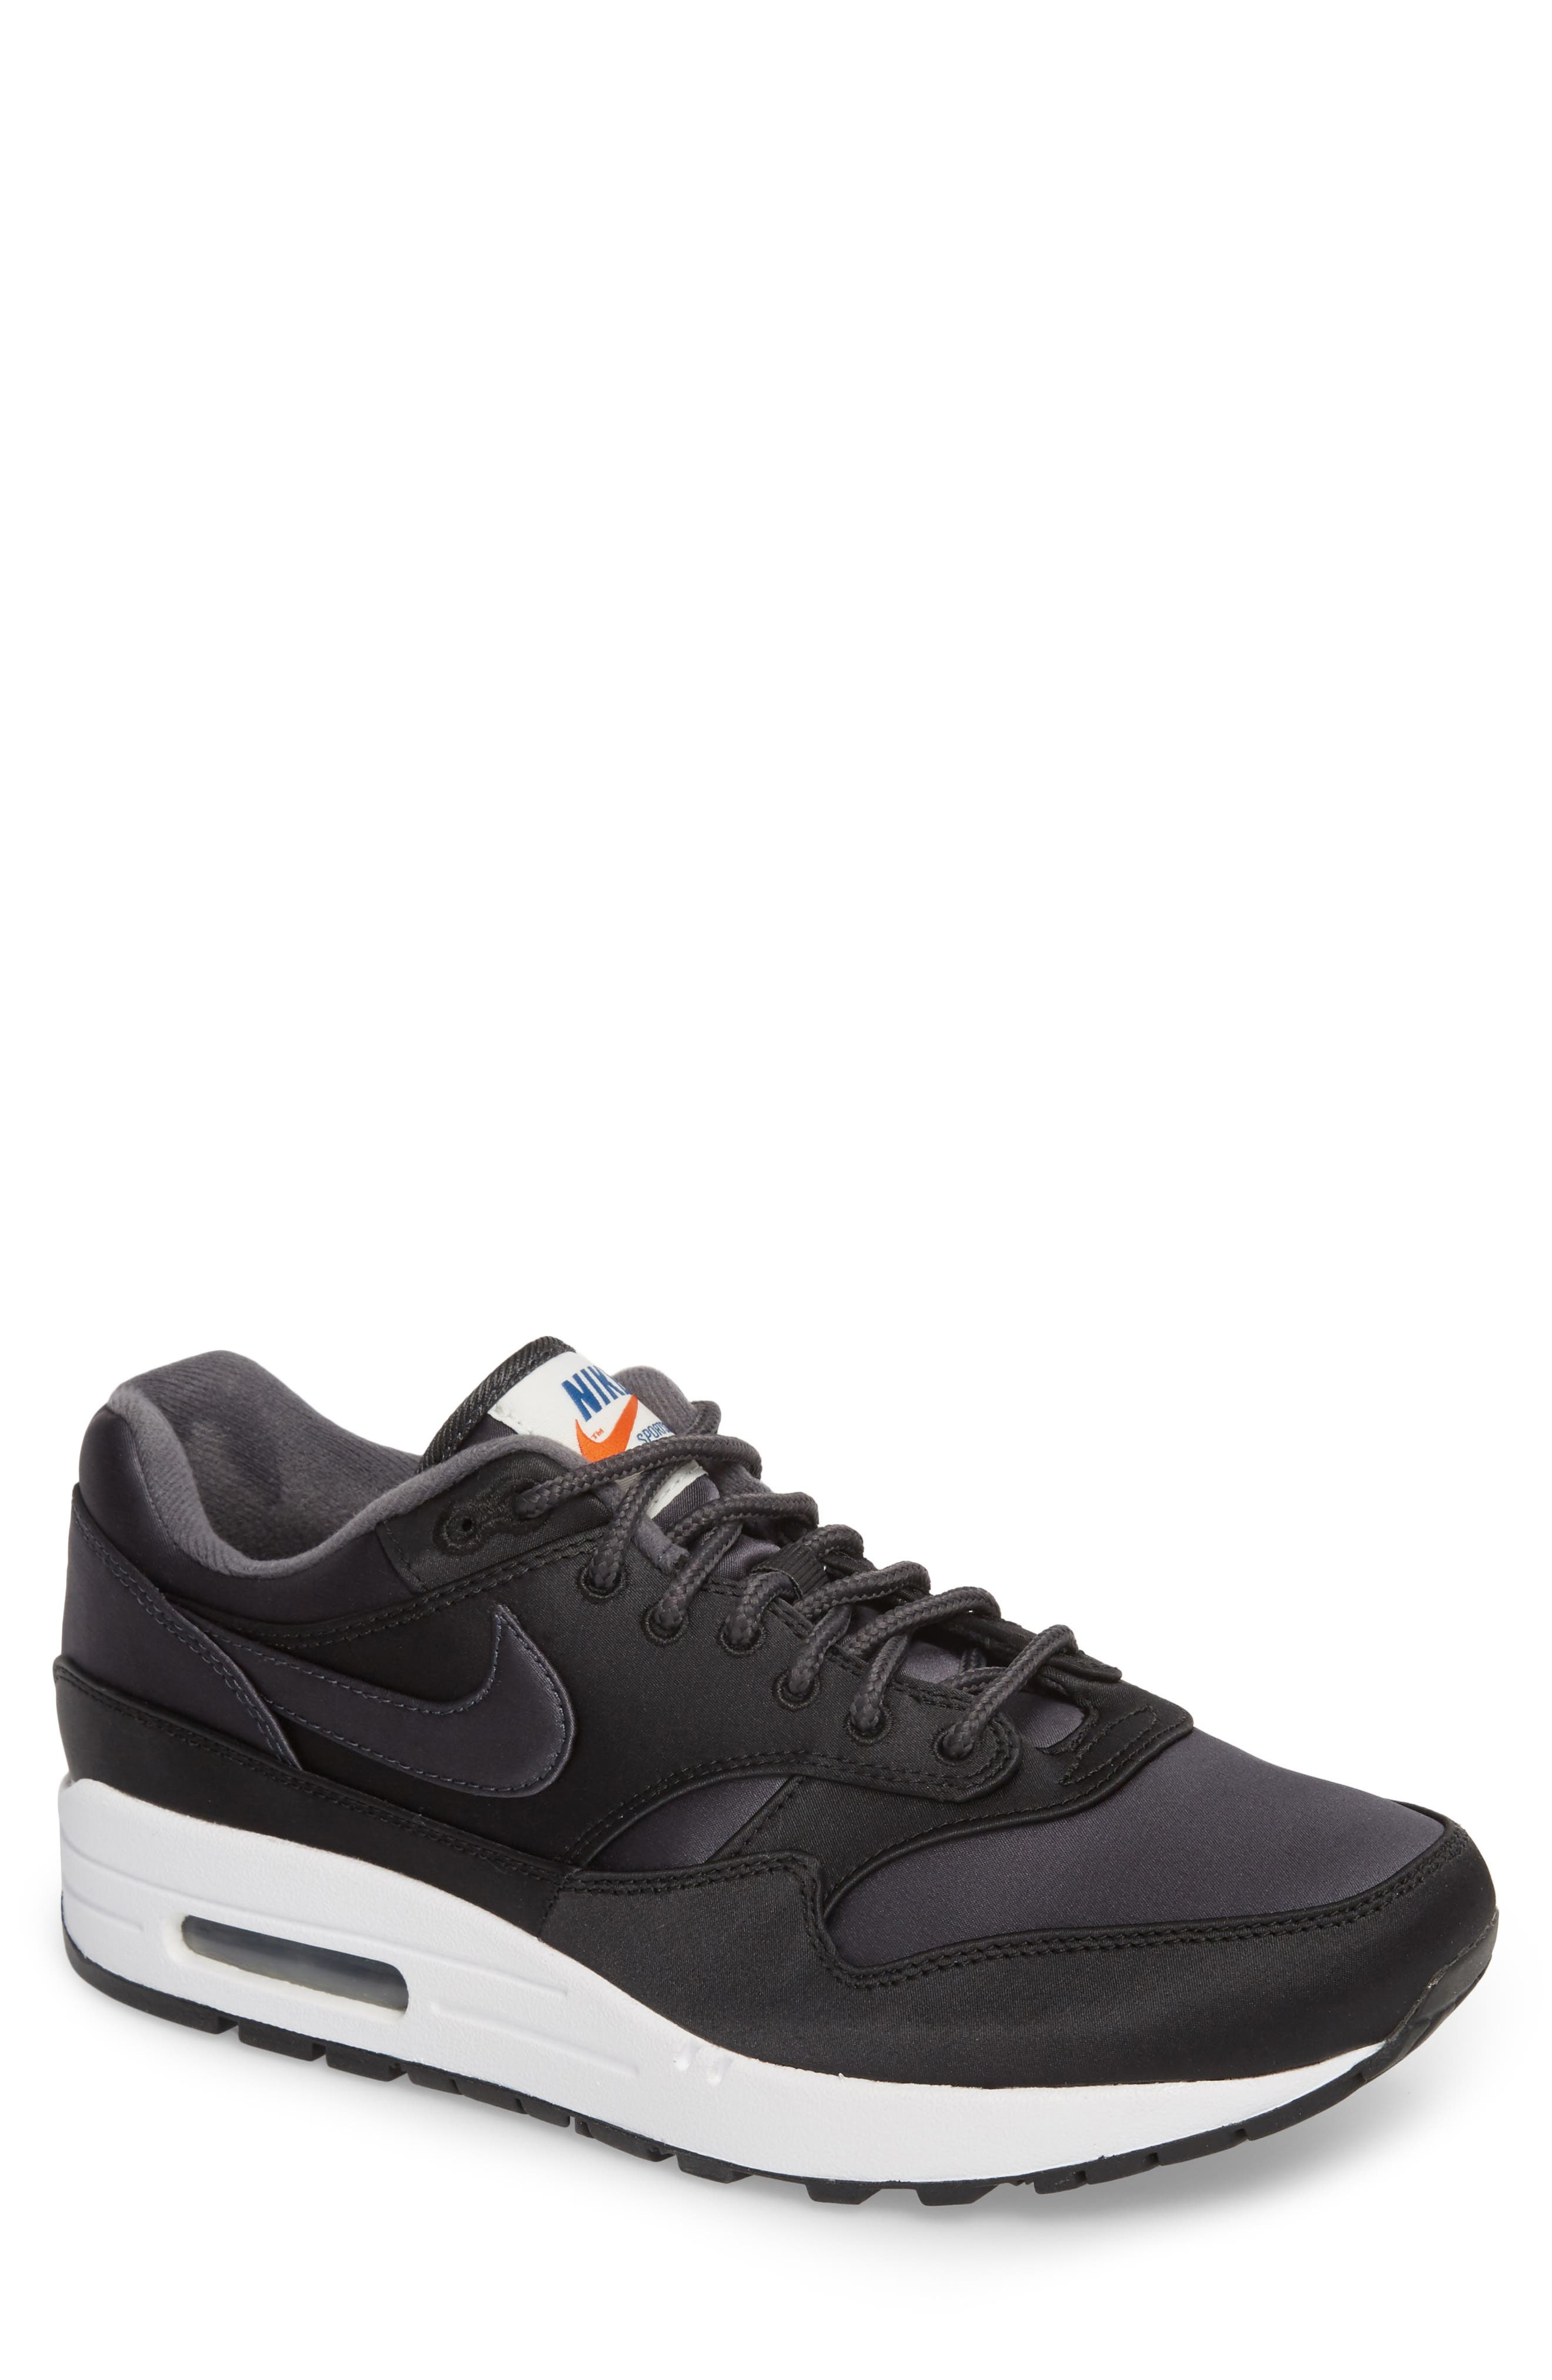 NIKE Air Max 1 SE Sneaker, Main, color, 001